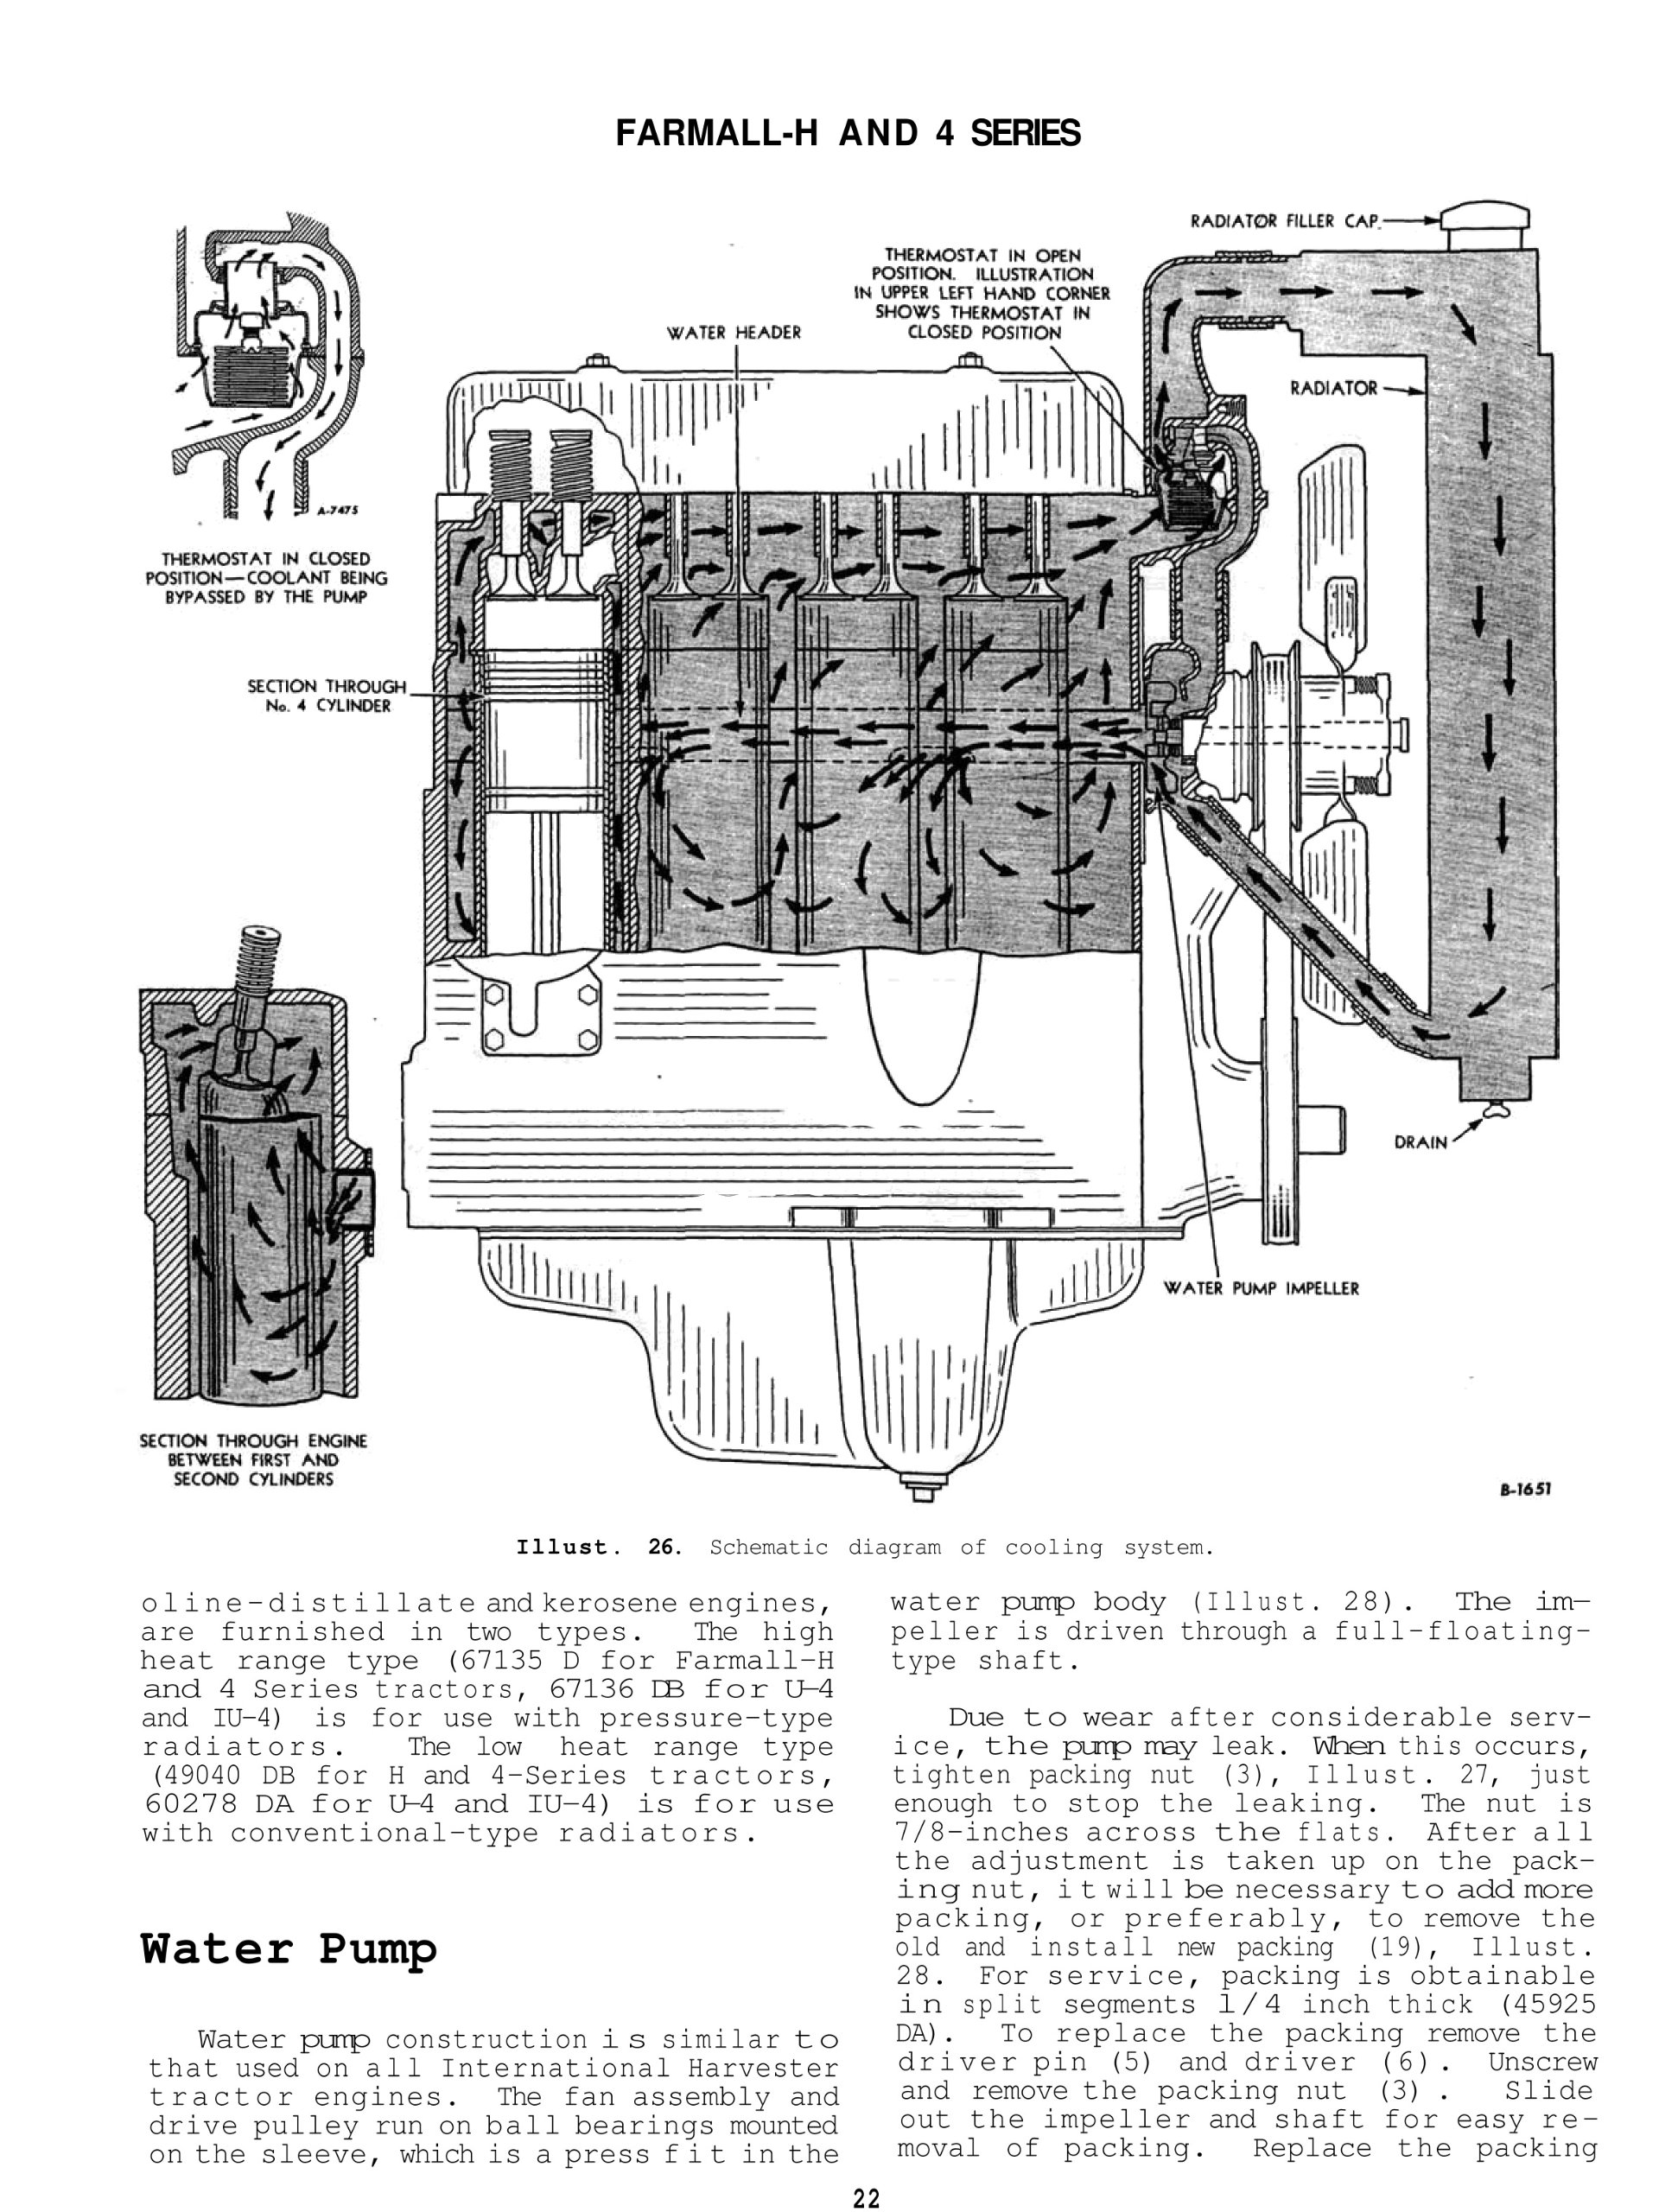 Farmall Super C Carburetor Adjustment Circuit Diagram Maker